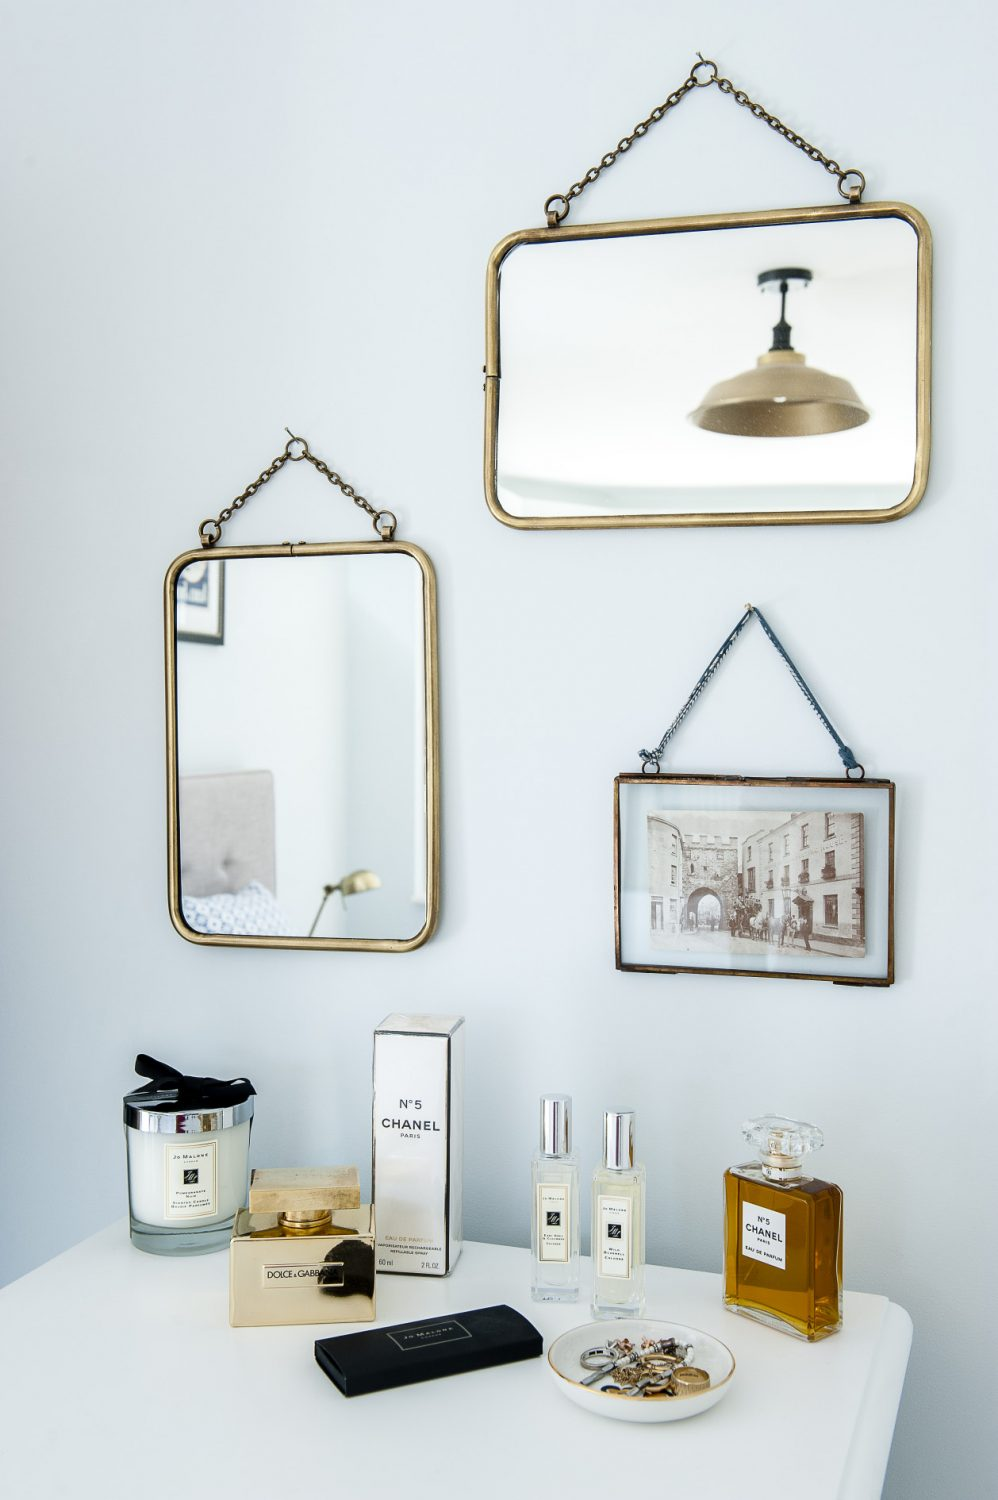 The brass-framed mirrors are from Cox & Cox. Jenna found the vintage photograph of her home town of Chepstow, South Wales and had it framed to match